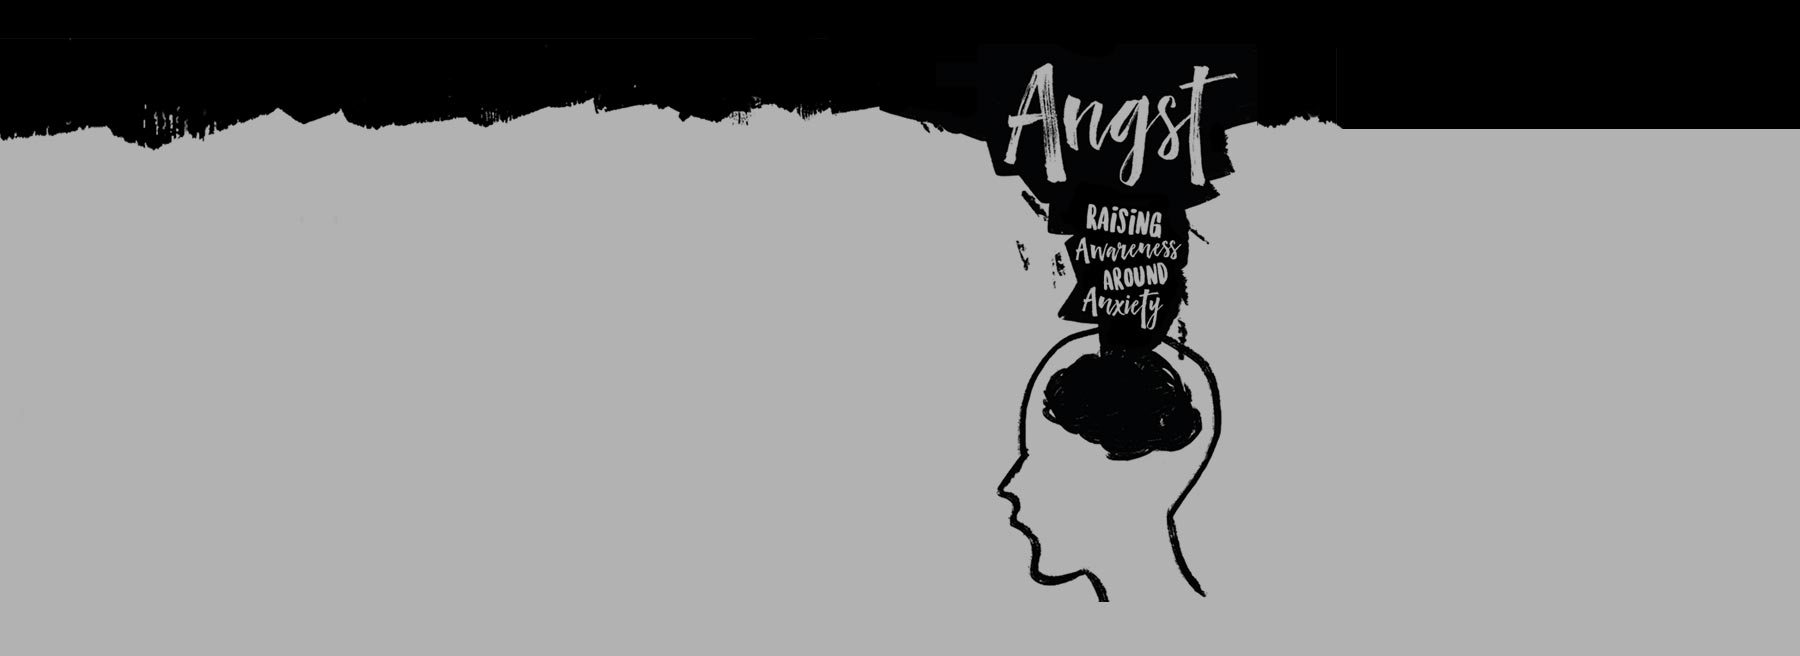 angst-banner